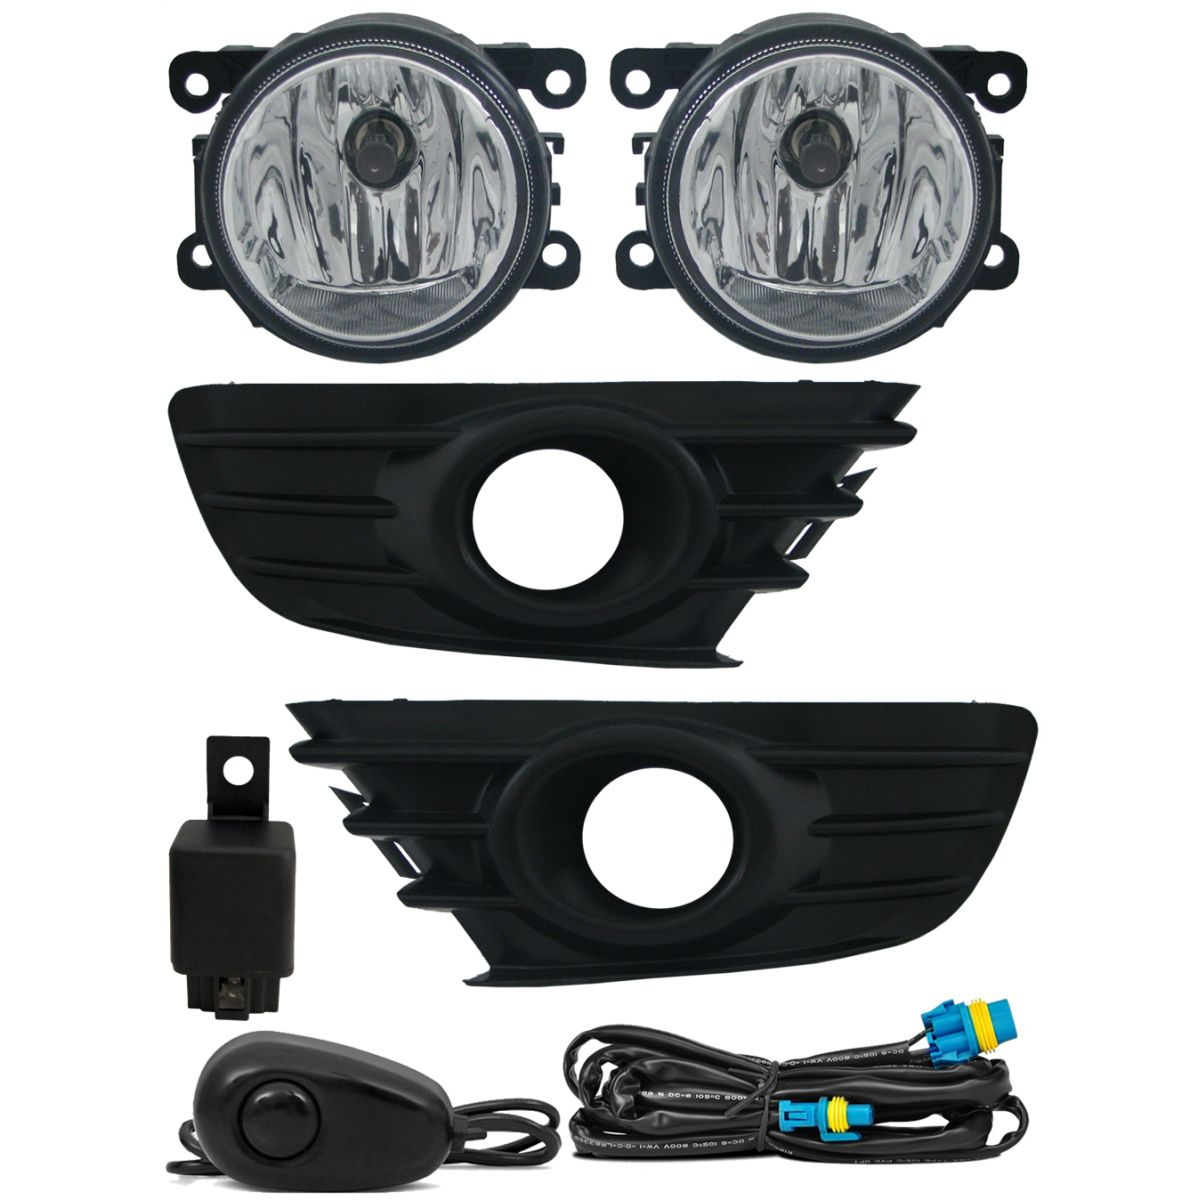 Kit Farol de Milha Neblina Citroen C4 Hatch 2009 2010 2011 2012 e C4 Pallas 2007 2008 2009 2010 2011 2012 - Interruptor Alternativo + Kit Xenon H8 Com Reator Digital -  6000K ou 8000K